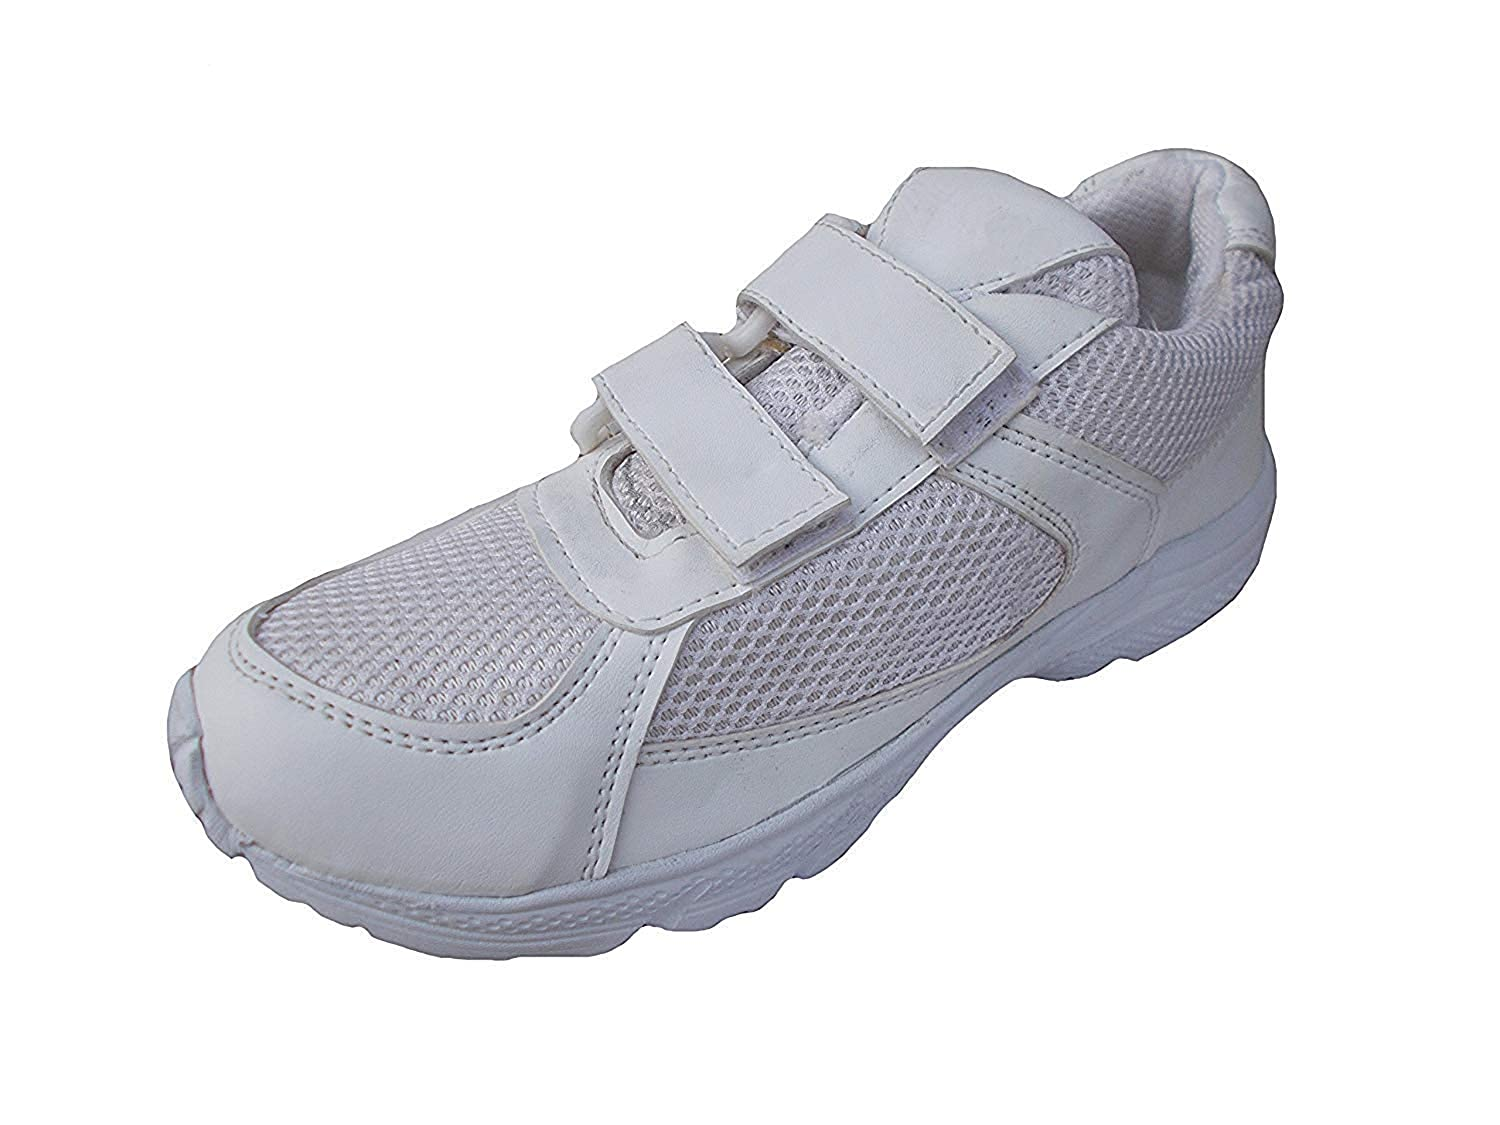 reasonable price top brands picked up Buy Port Unisex White School Shoes (Size 5 UK/IND) at Amazon.in